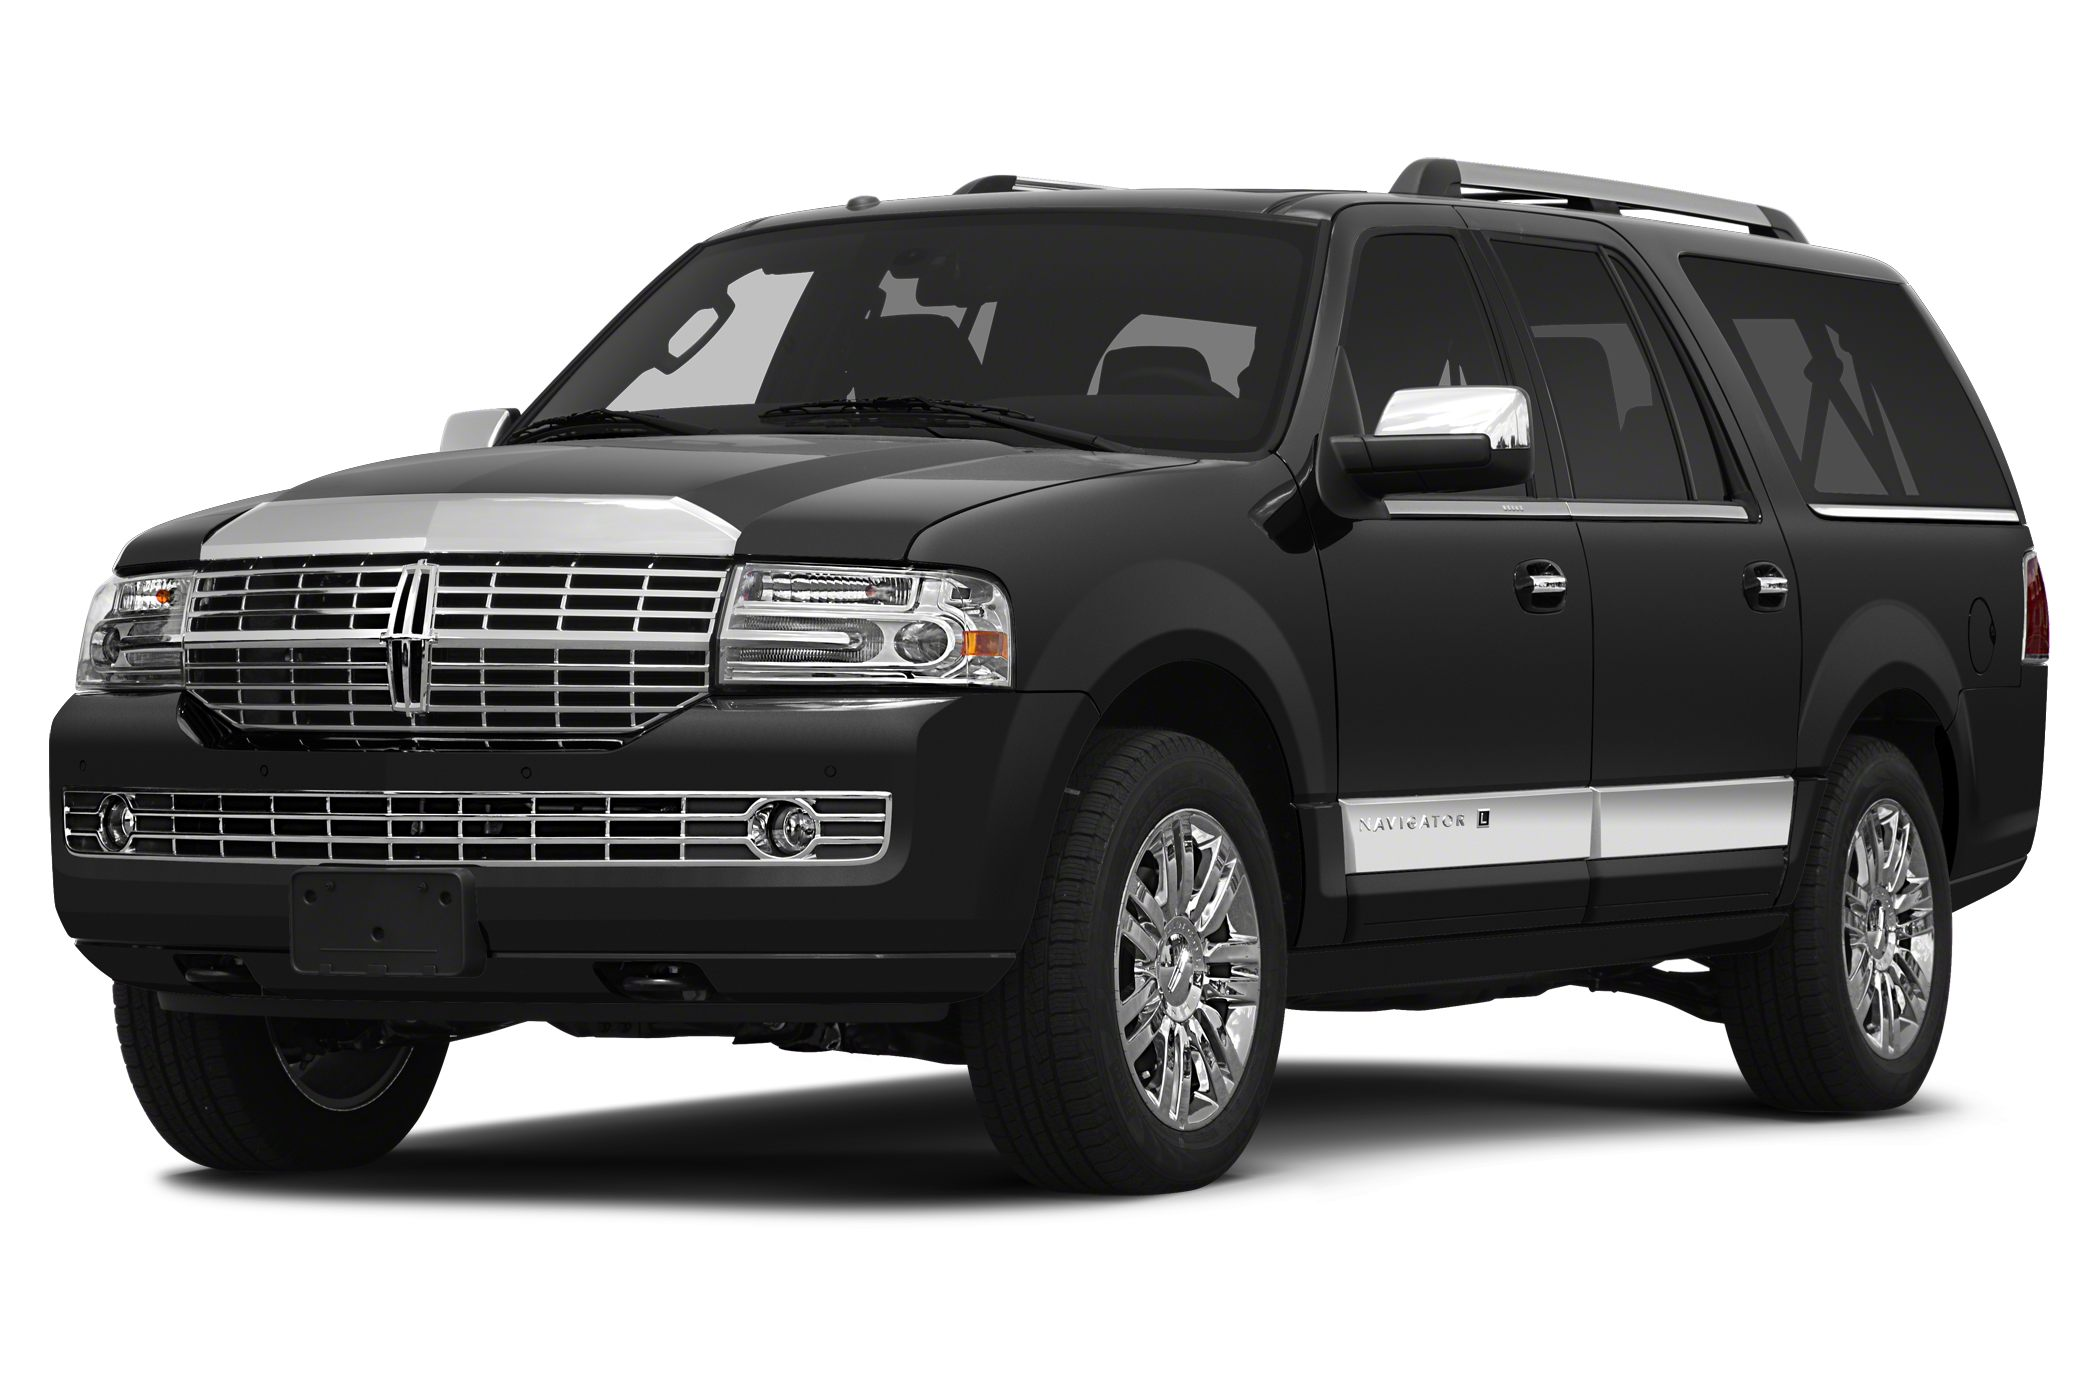 2014 Lincoln Navigator L SUV for sale in Pompano Beach for $63,065 with 355 miles.